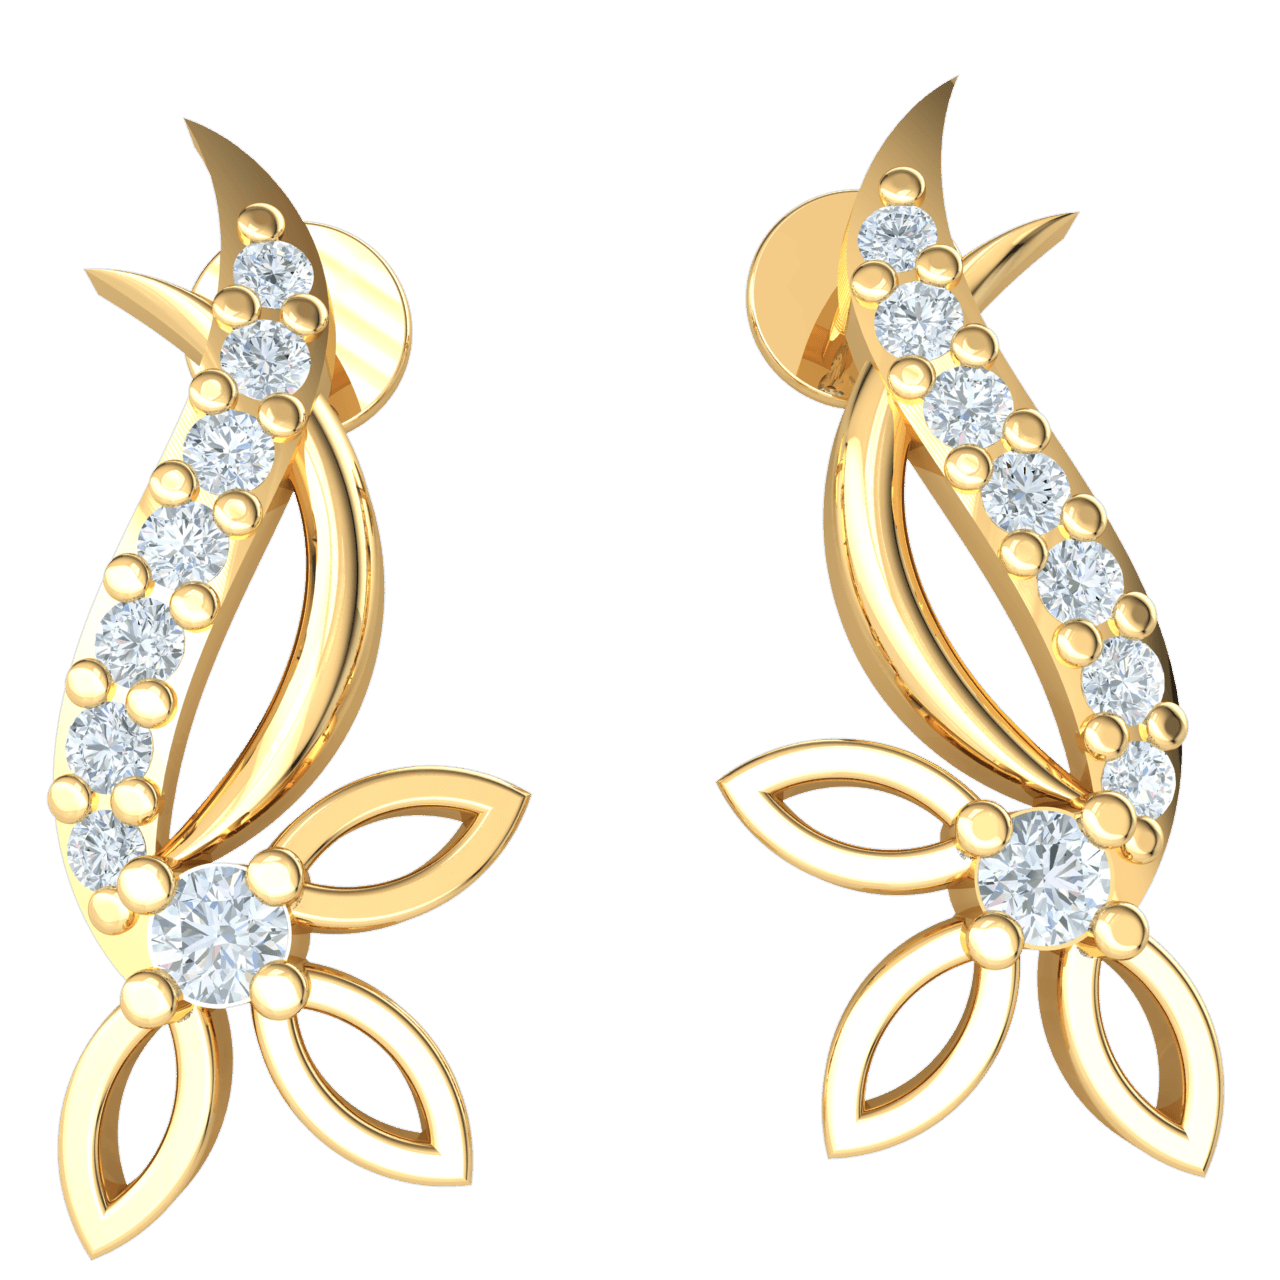 0.13 Ct IJ SI2 Exquisite Real 3 Leaf Swan Neck Earrings Emblazzend With Several Stunning White Diamonds in 14 kt Gold